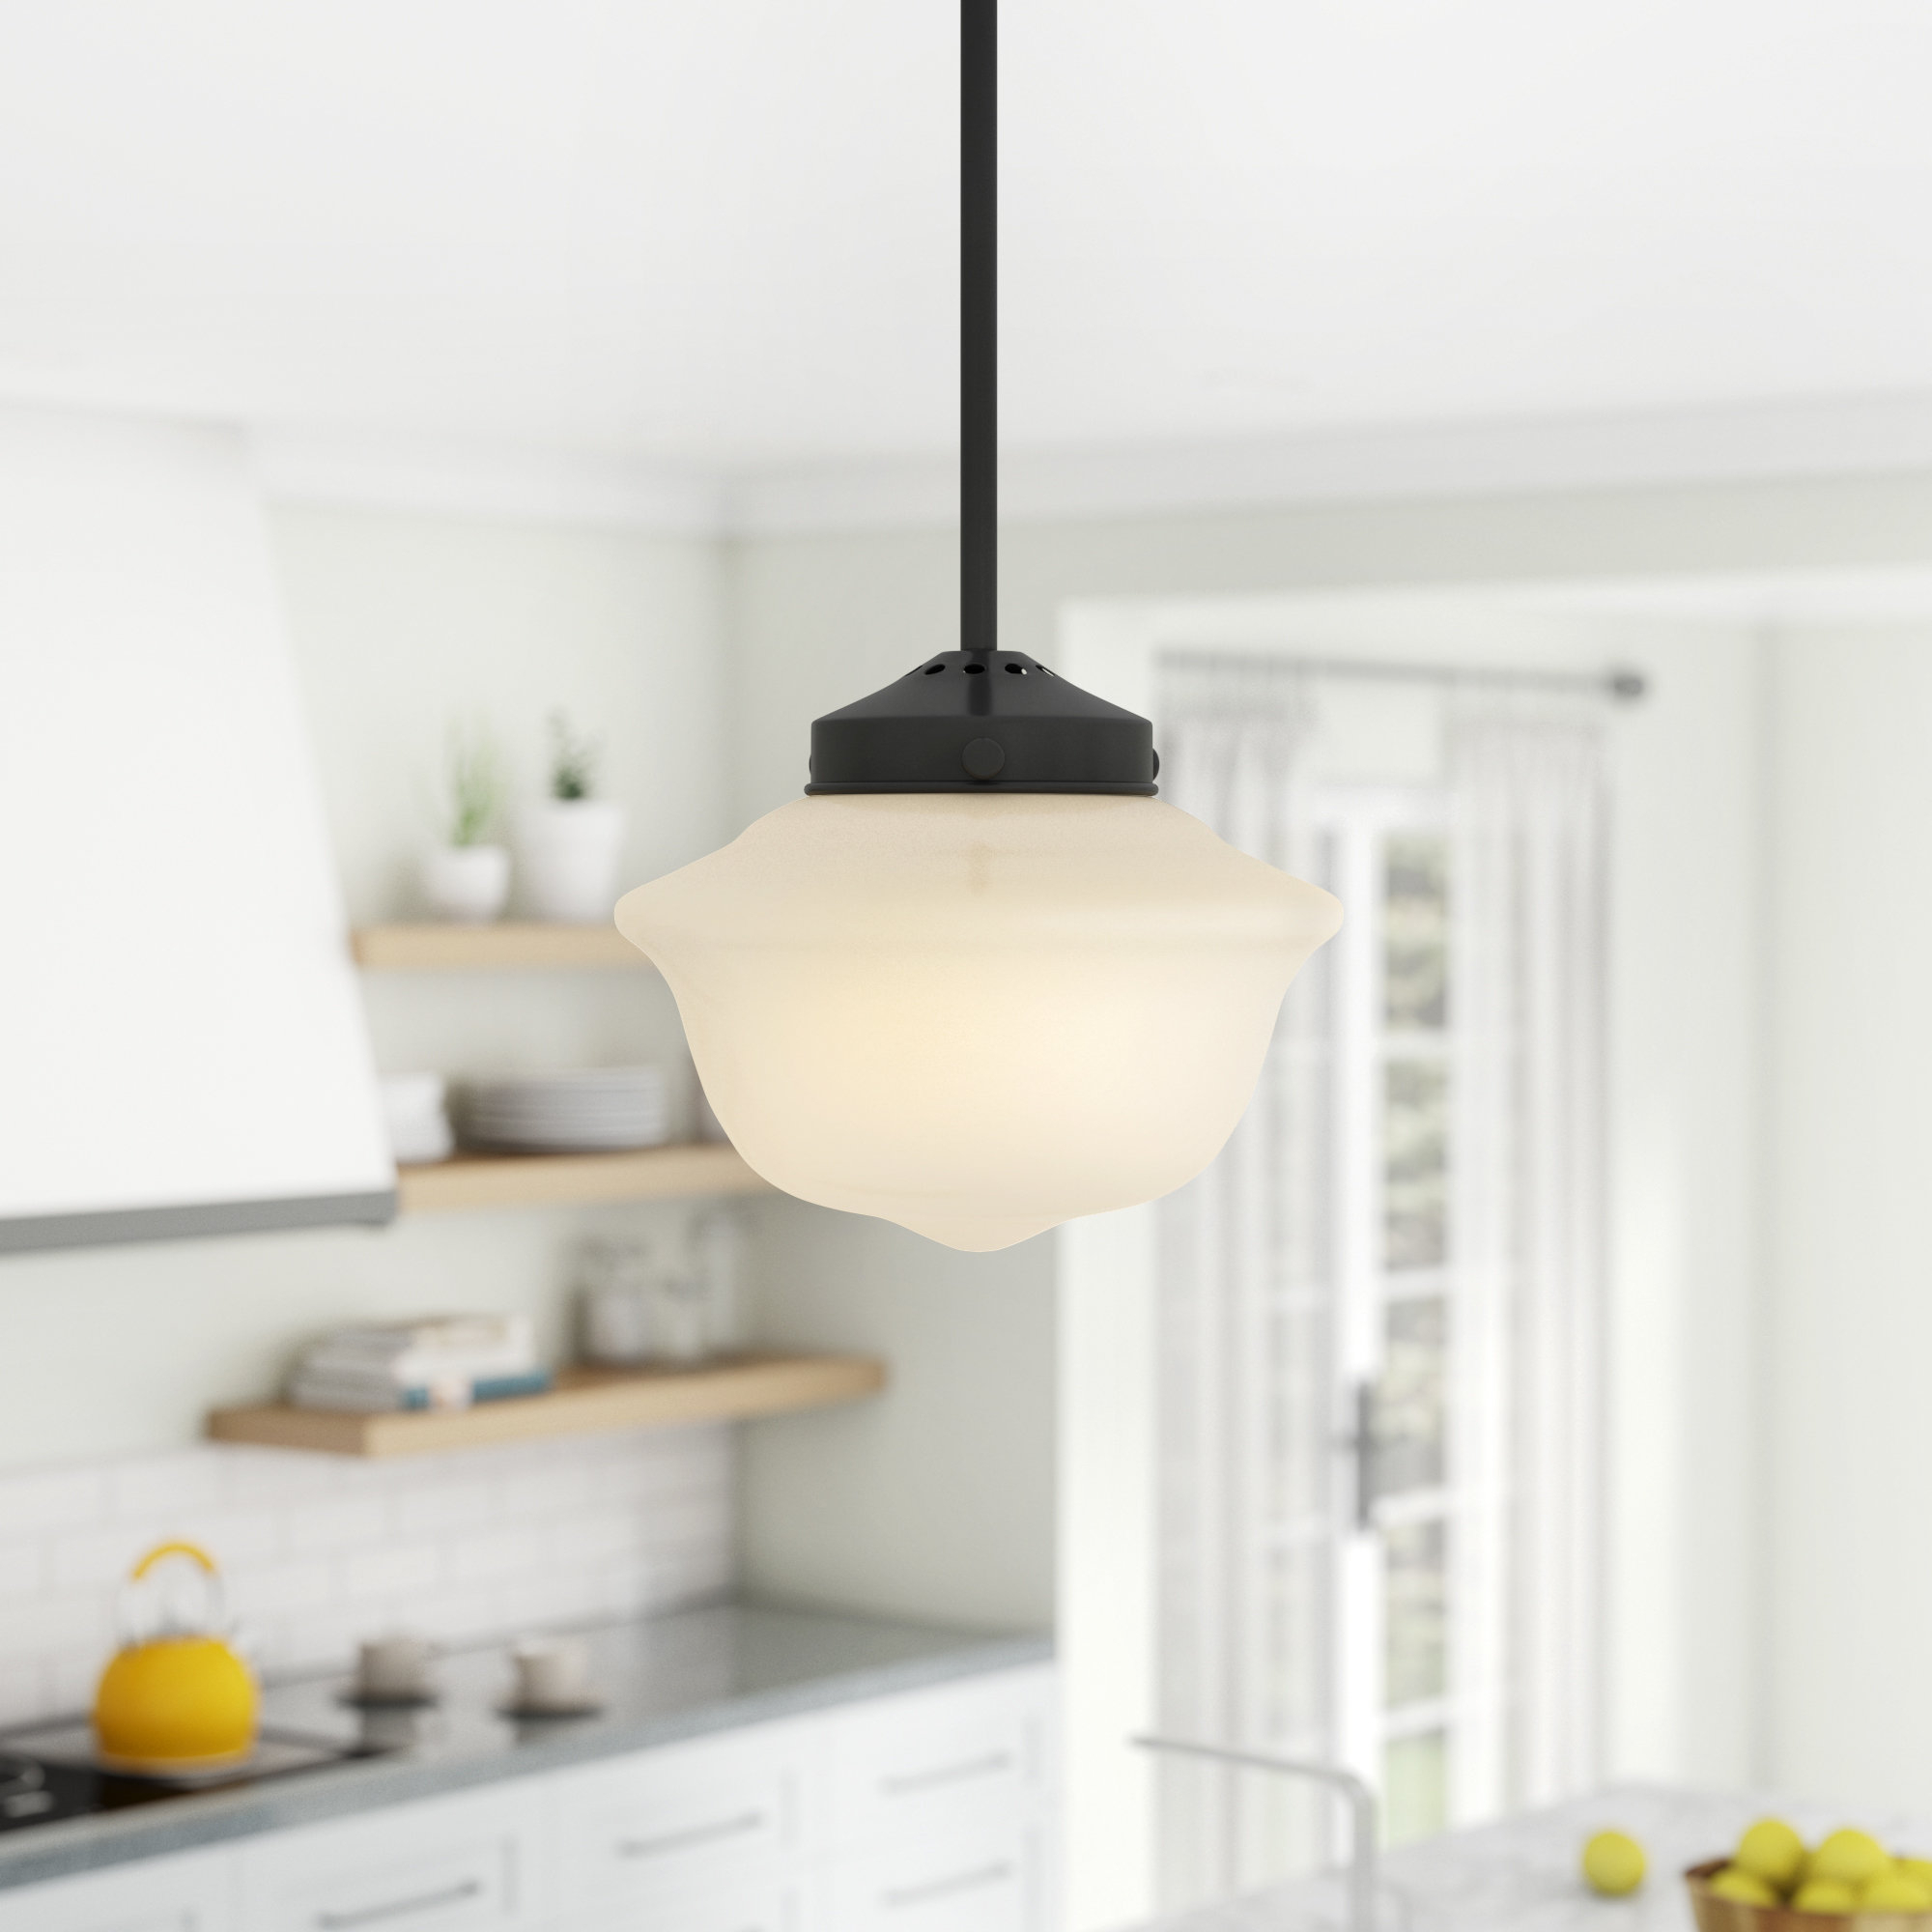 Newest Hildred 1 Light Single Schoolhouse Pendant With 1 Light Single Schoolhouse Pendants (Gallery 3 of 20)